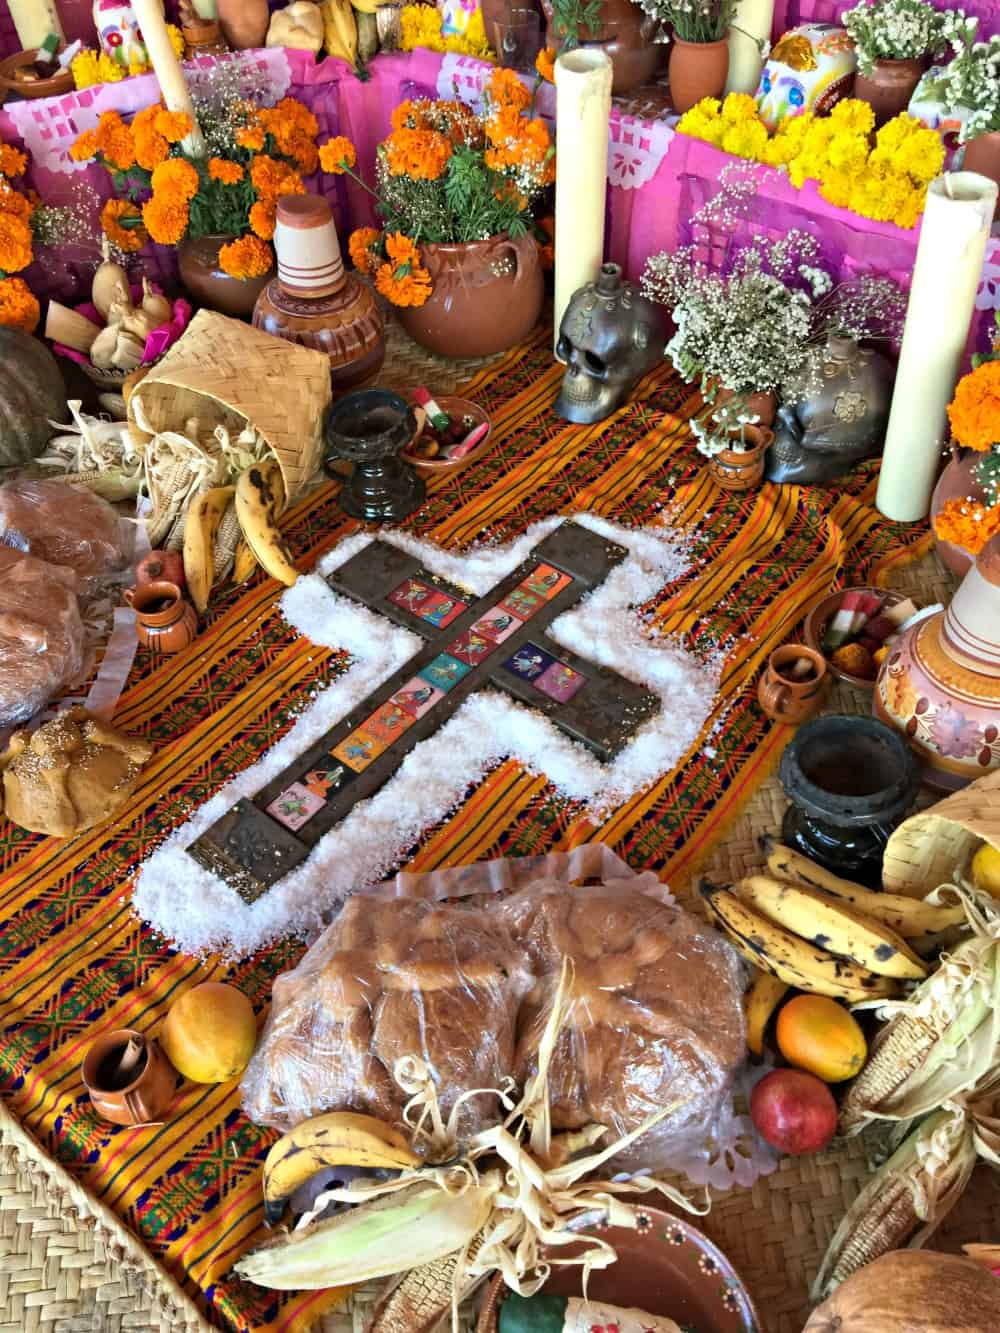 A cross on a Day of the Dead altar surrounded by marigolds, candles, and bread.